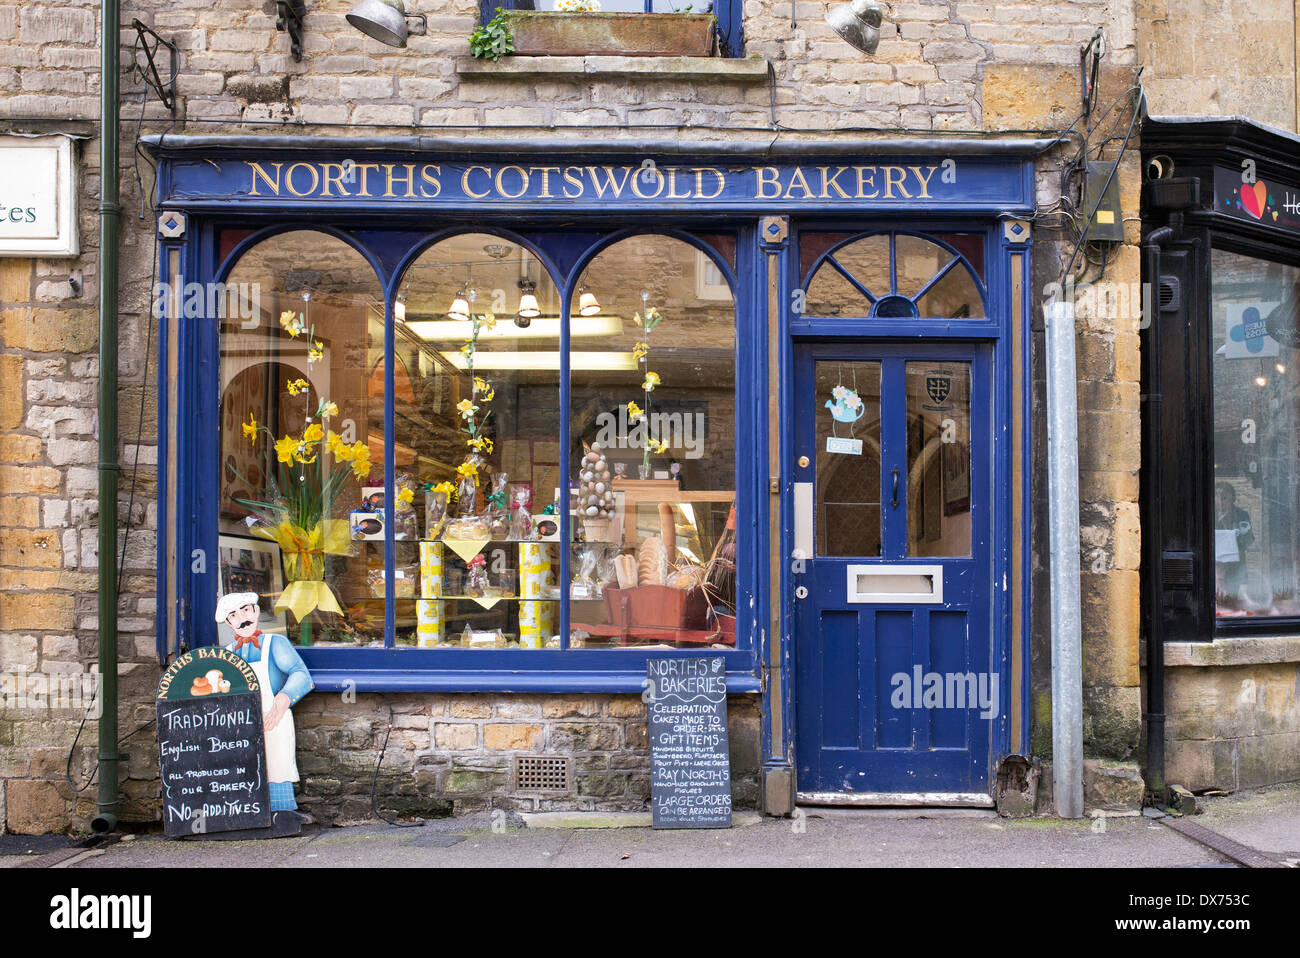 Norths Cotswold Bakery Shop, Stow on the Wold, Cotswolds, Gloucestershire, England - Stock Image